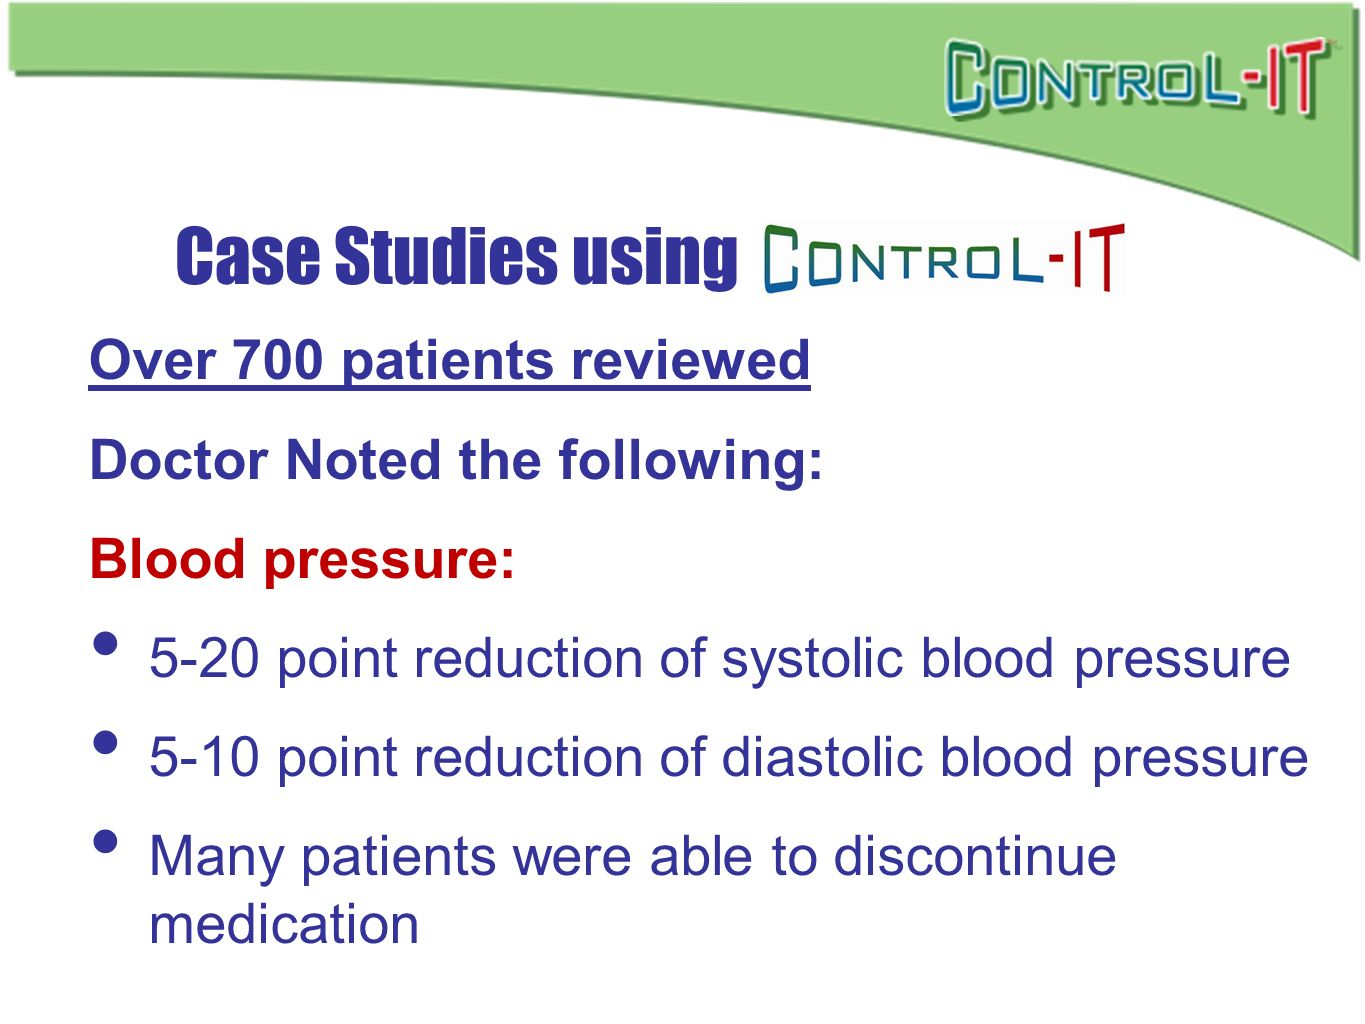 Over 700 patients reviewed Doctor Noted the following: Blood pressure: 5-20 point reduction of systolic blood pressure 5-10 point reduction of diastol